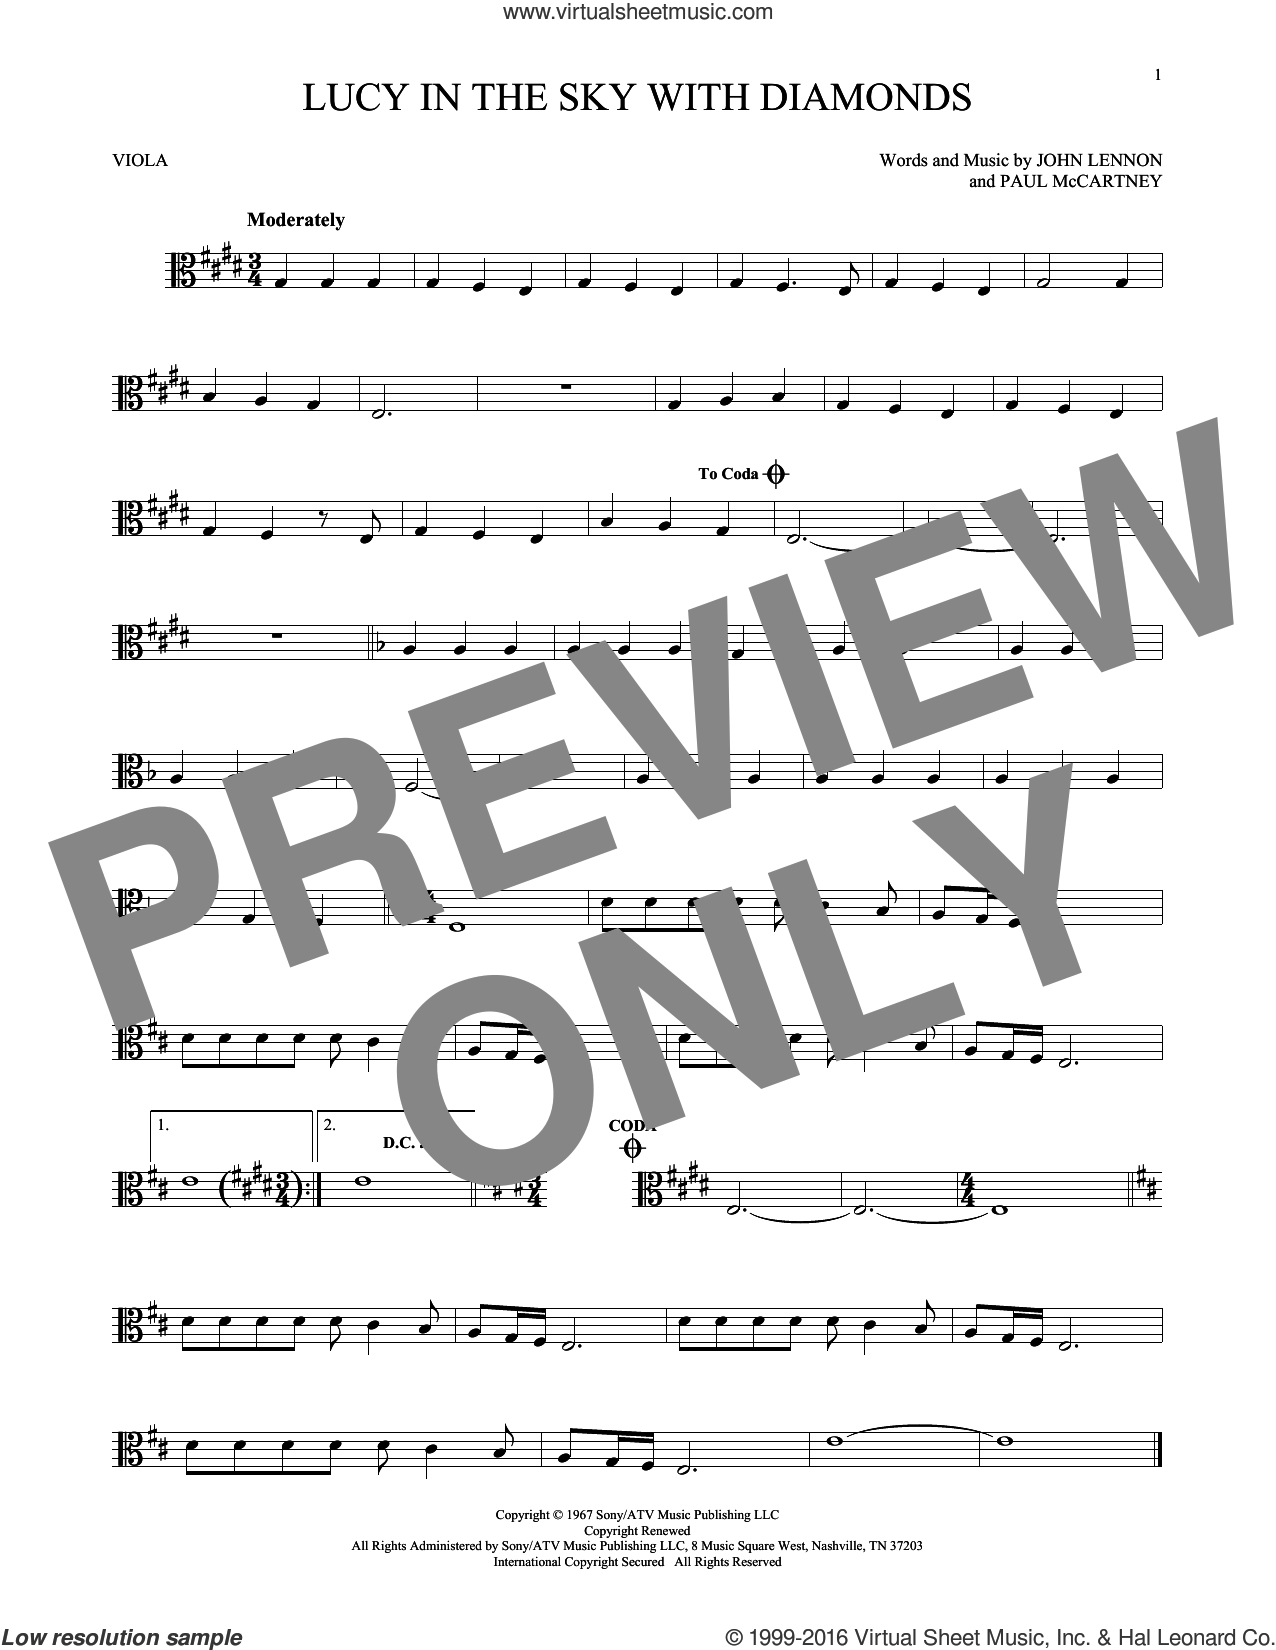 Lucy In The Sky With Diamonds sheet music for viola solo by The Beatles, Elton John, John Lennon and Paul McCartney, intermediate skill level